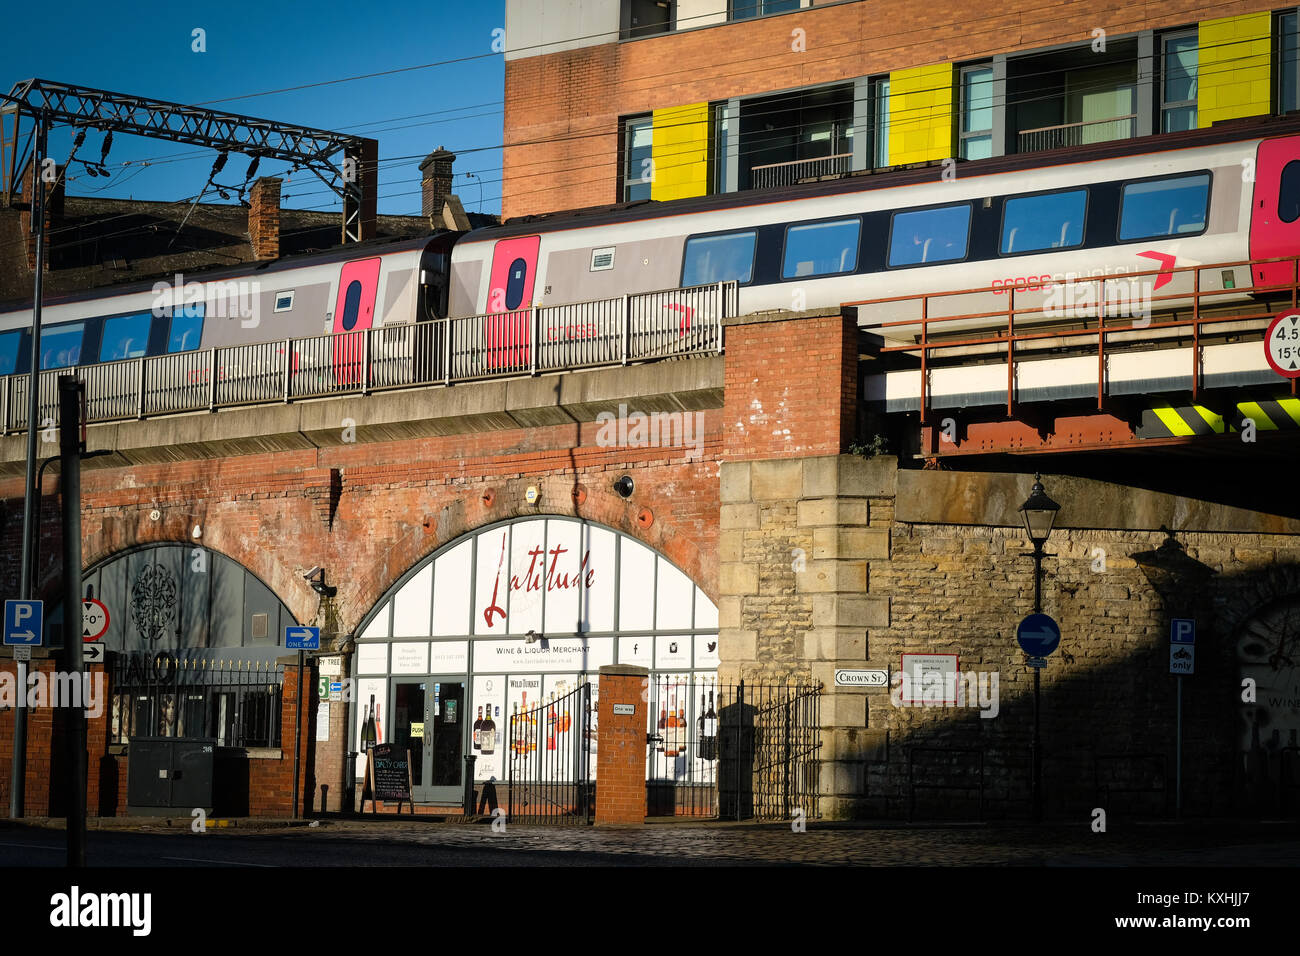 A CrossCounty train passing over shops and buildings on an elevate rail track in Leeds city centre, Yorkshire, UK - Stock Image